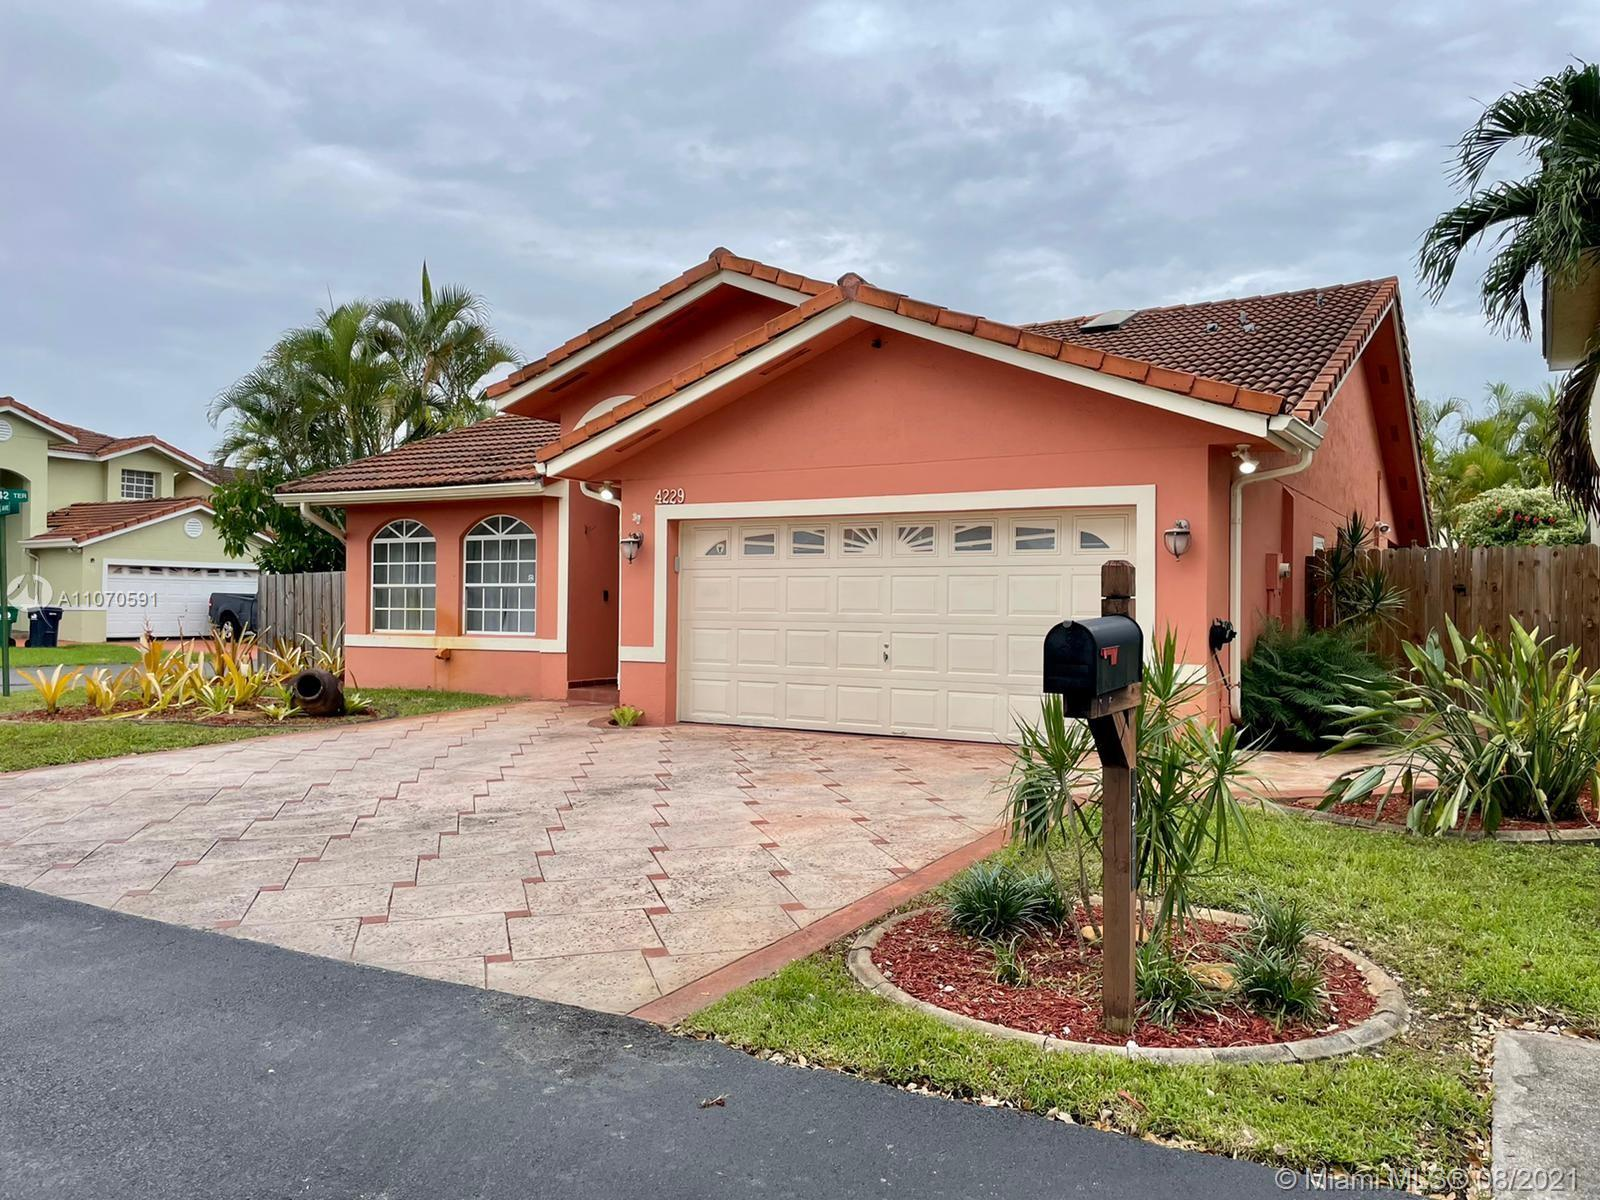 Lakes Of The Meadow - 4229 SW 154th Ave, Miami, FL 33185